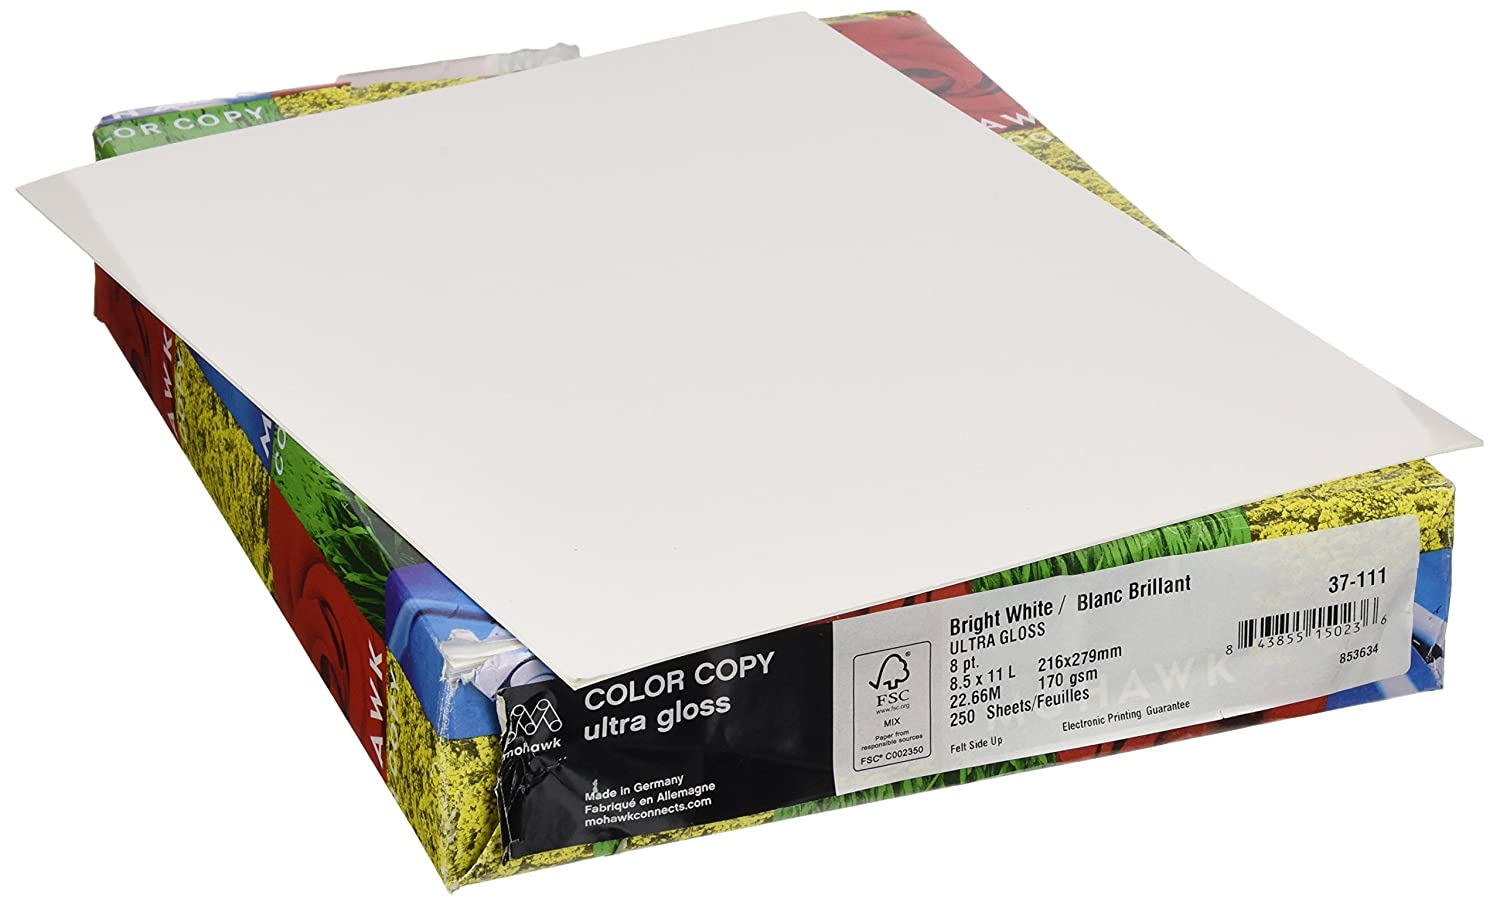 Color printing paper - Amazon Com Mohawk Color Copy Ultra Gloss Cover Paper 92 Bright White Shade 8 Point 8 5 X 11 Inches 30 Pcw 250 Sheets Ream Sold As 1 Ream 37 111